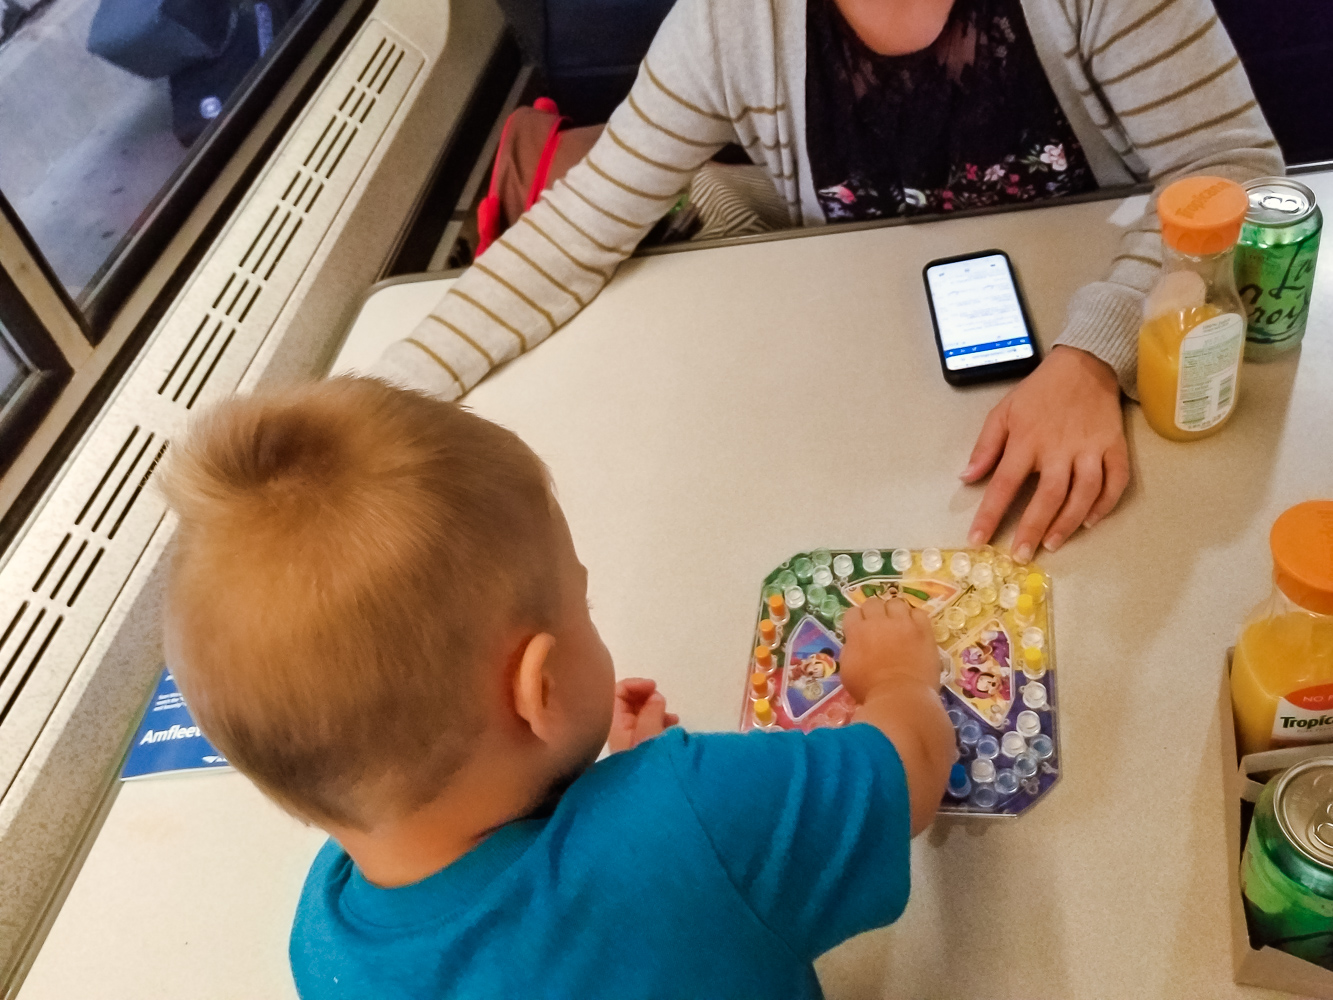 Train travel with a toddler_toddler playing trouble